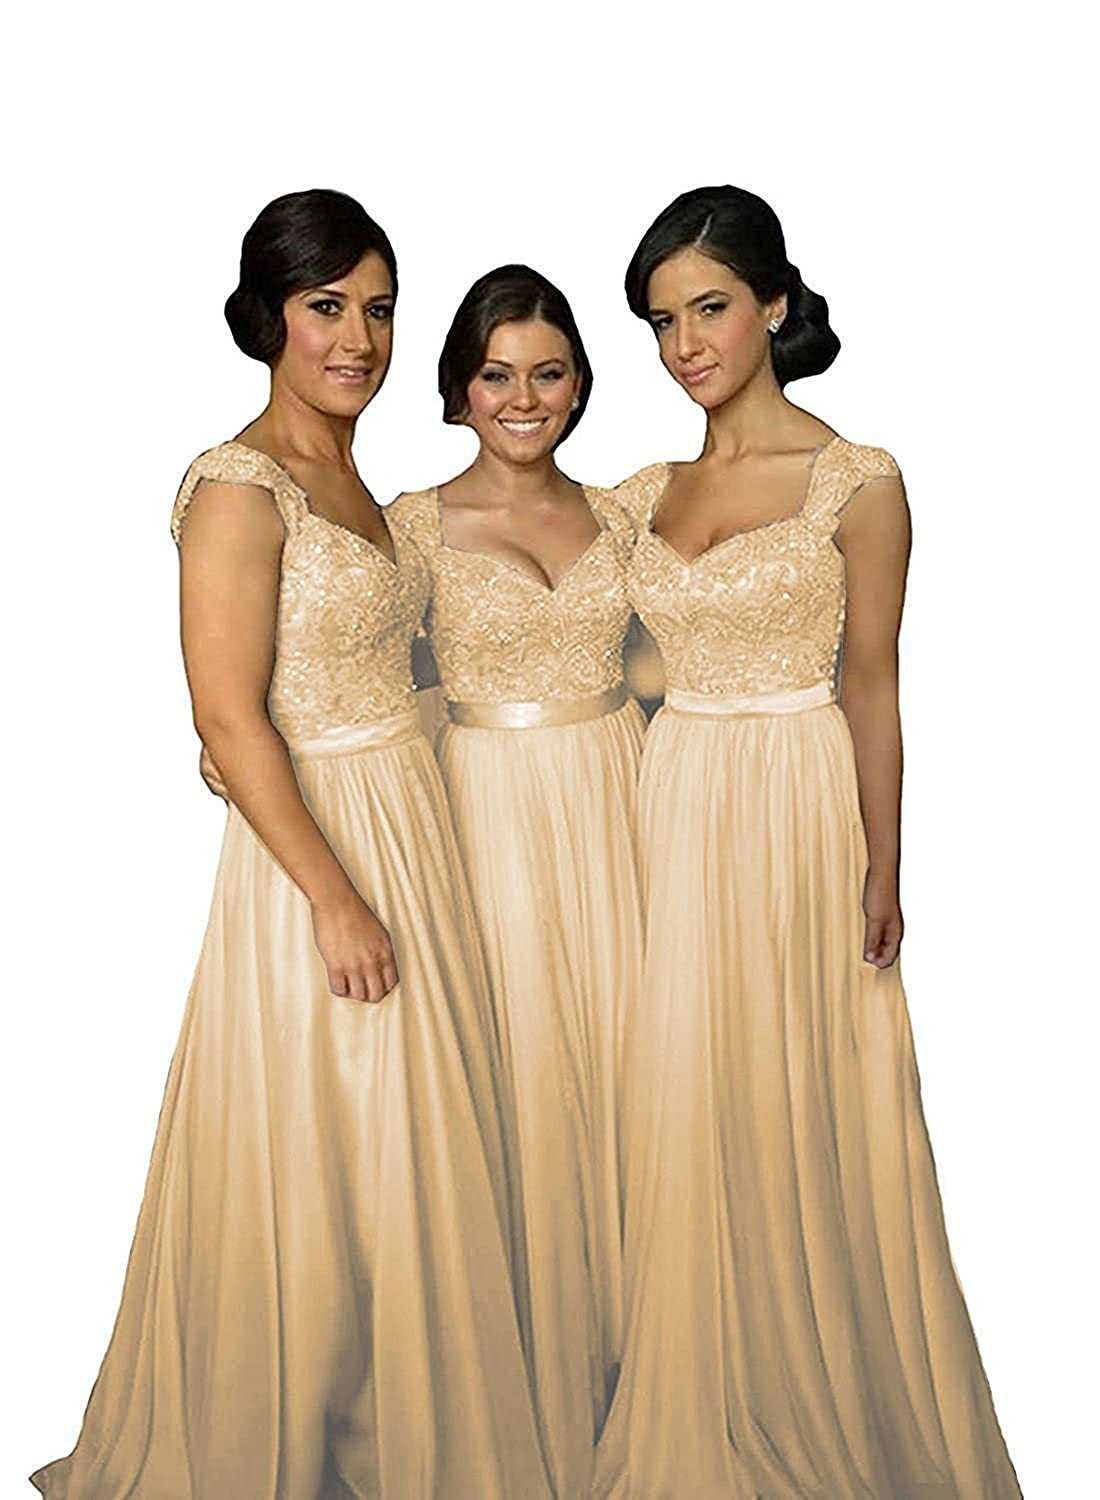 Champagne Future Girl Women's Lace Bridesmaid Dresses Cap Sleeve Long Wedding Party Gowns